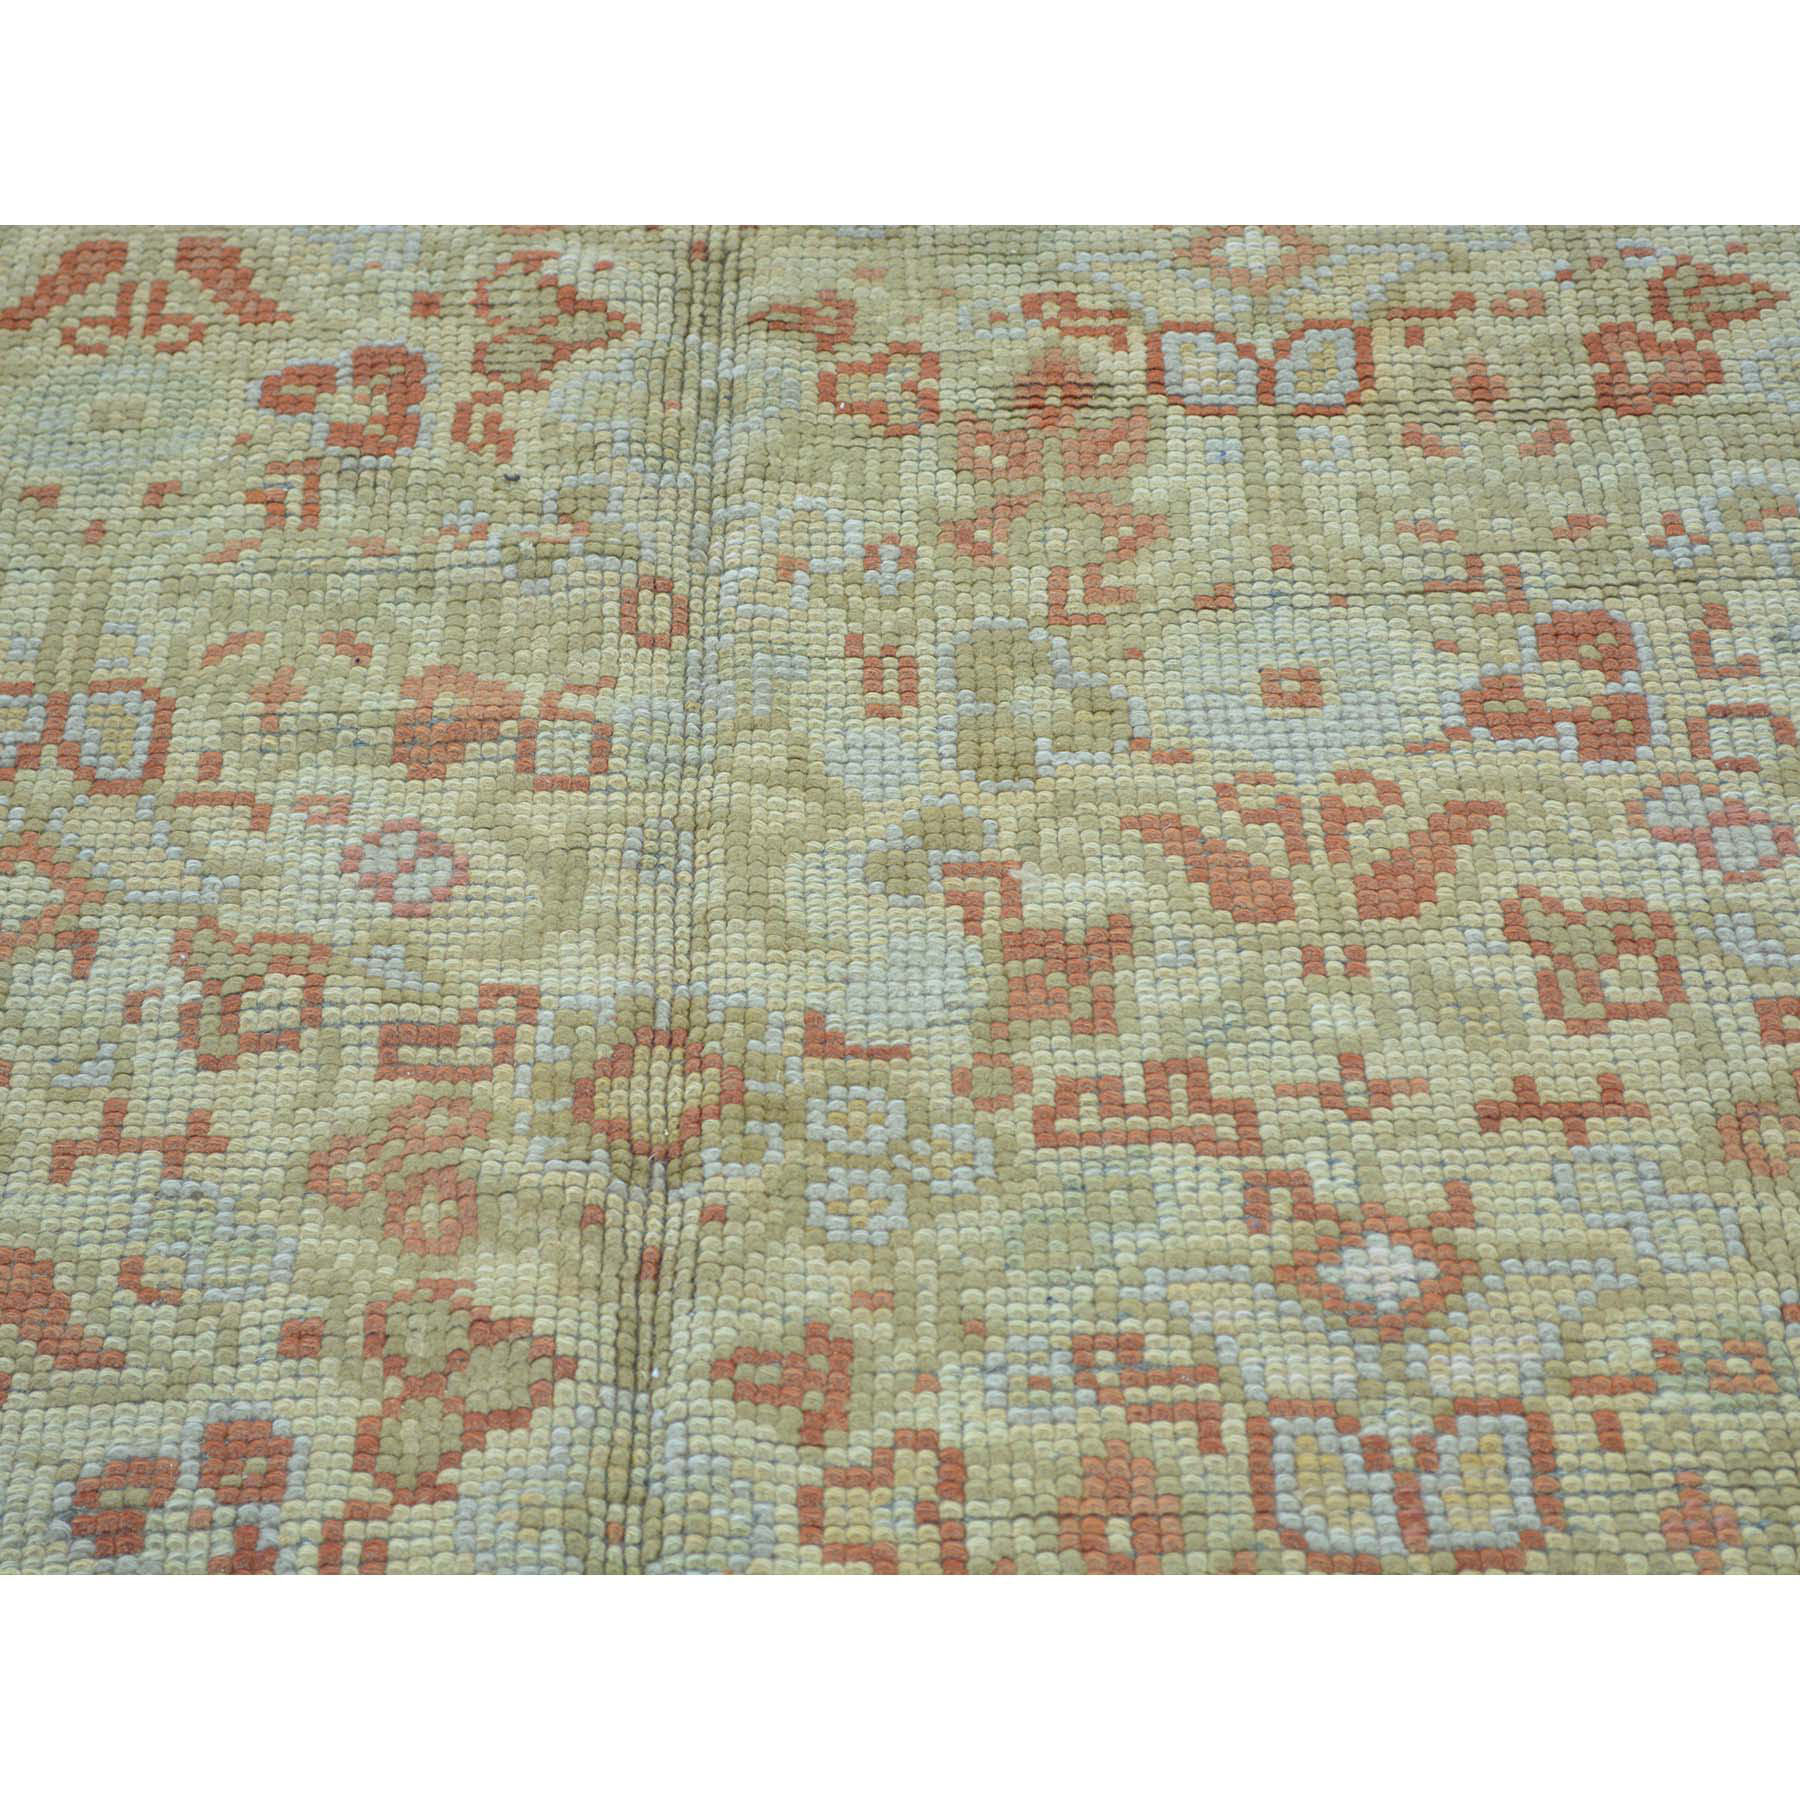 8-7 x14-9  Gallery Size Antique European Donegal Exc Cond Pure Wool Rug